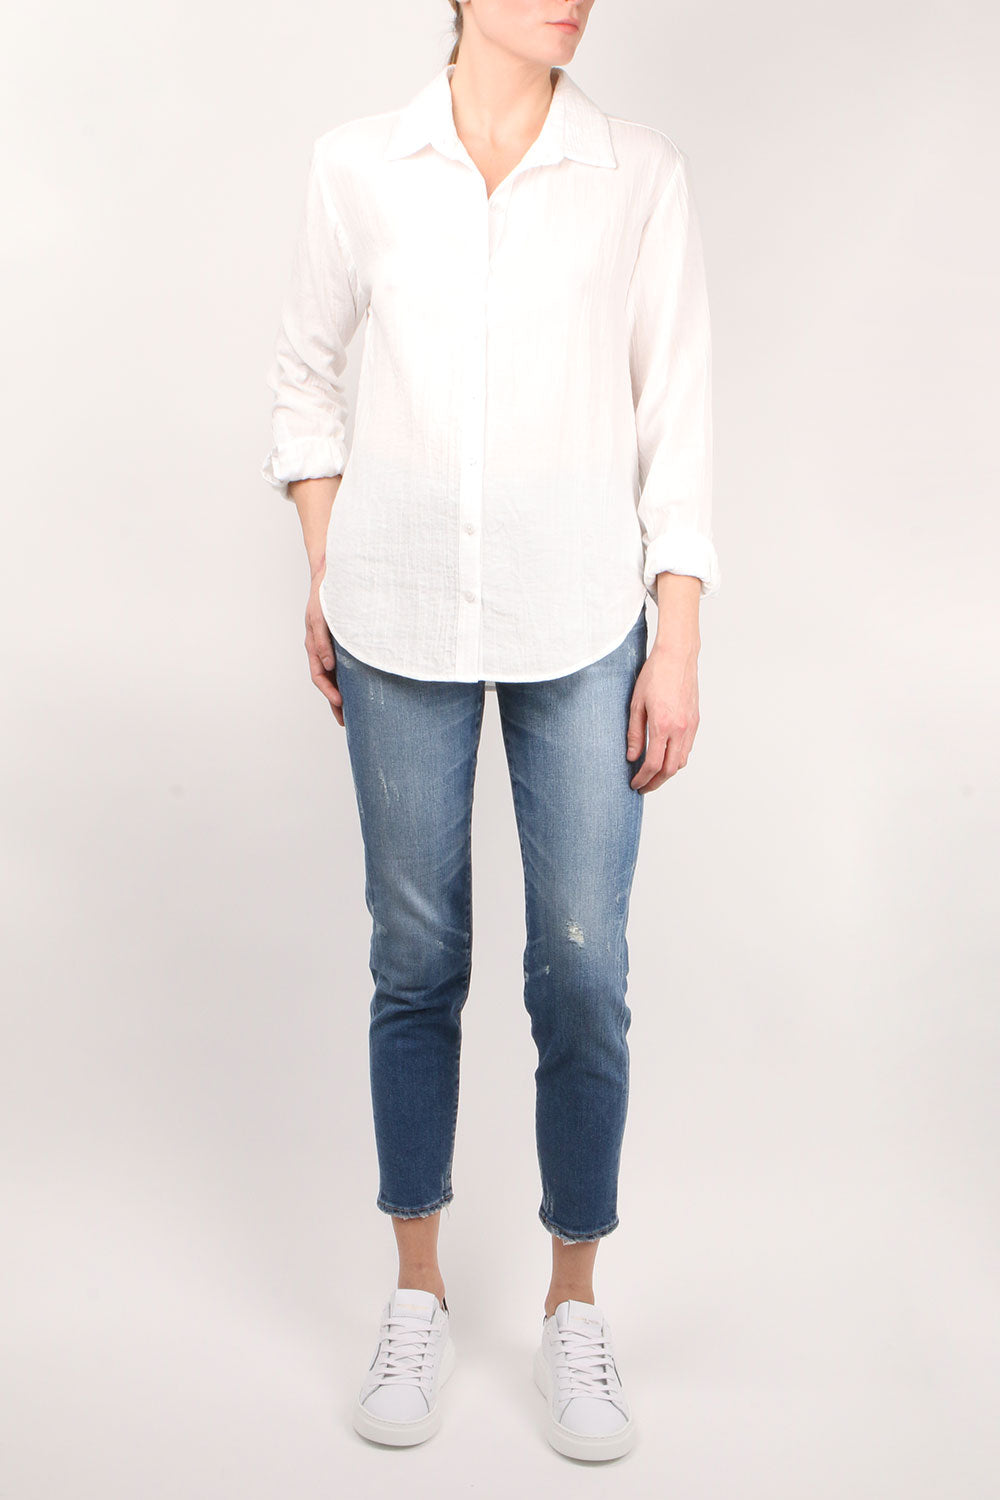 Bleecker White Shirt